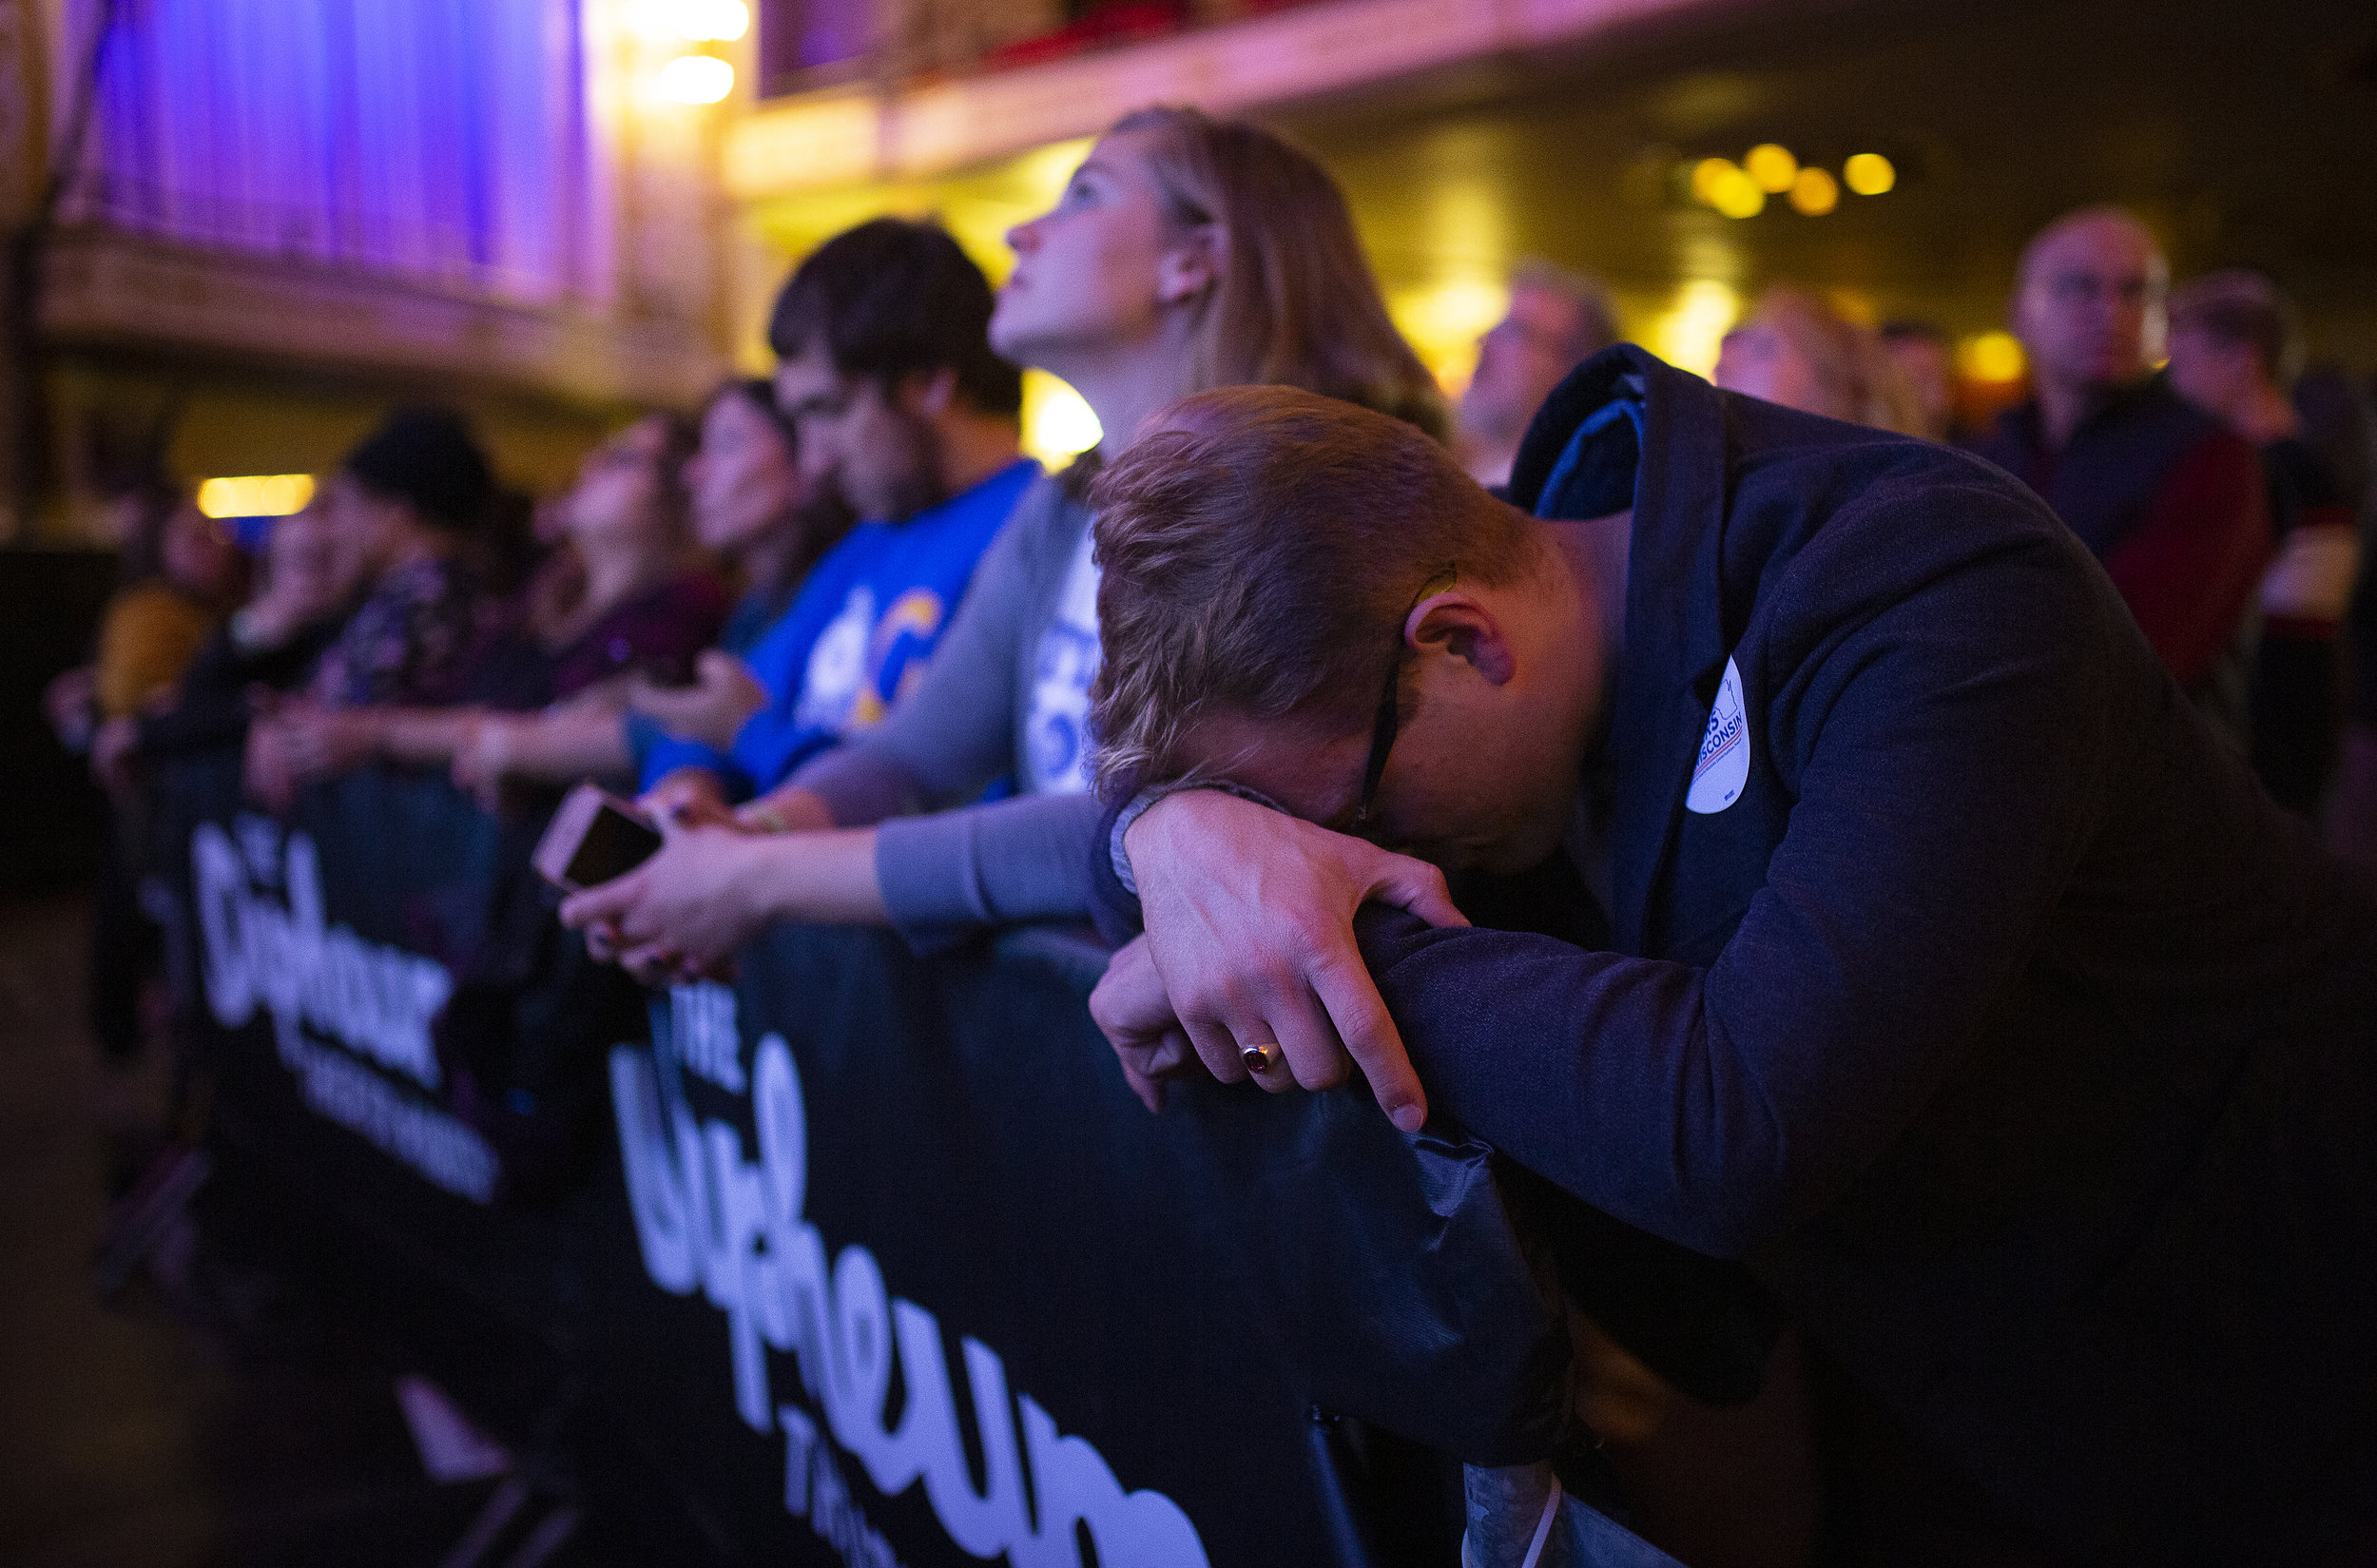 Andrew Carlson rests his head before Tony Evers took the stage during the Election Night watch party at the Orpheum Theater in Madison, Wisconsin, Wednesday, Nov. 7, 2018.